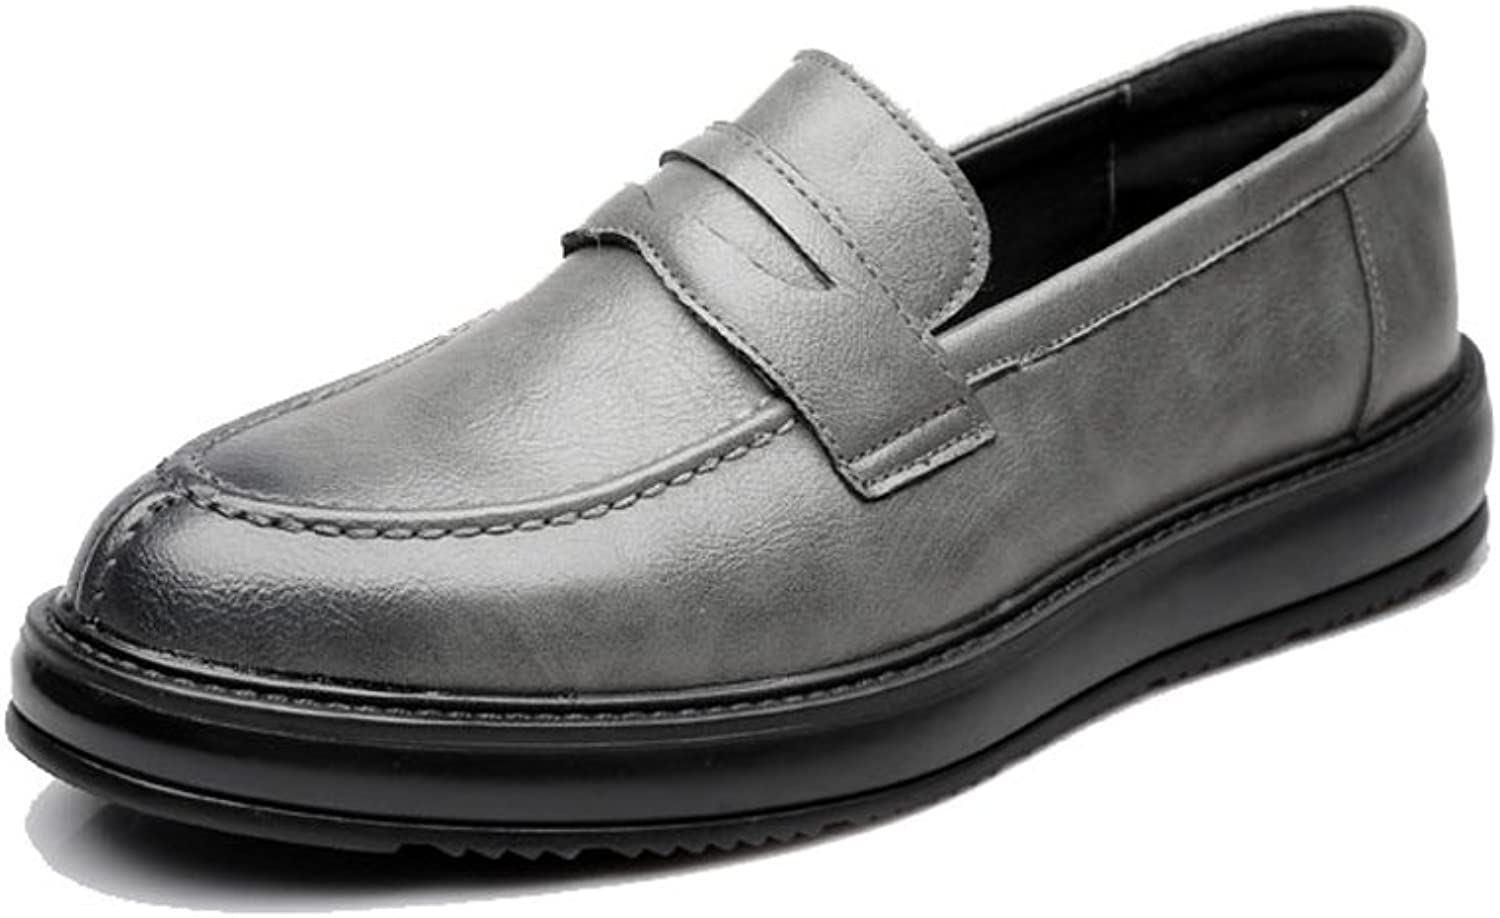 XHD- Classic shoes Simple Men's Formal Business shoes Classic Slip-on Loafers PU Leather Casual Outsole Oxfords